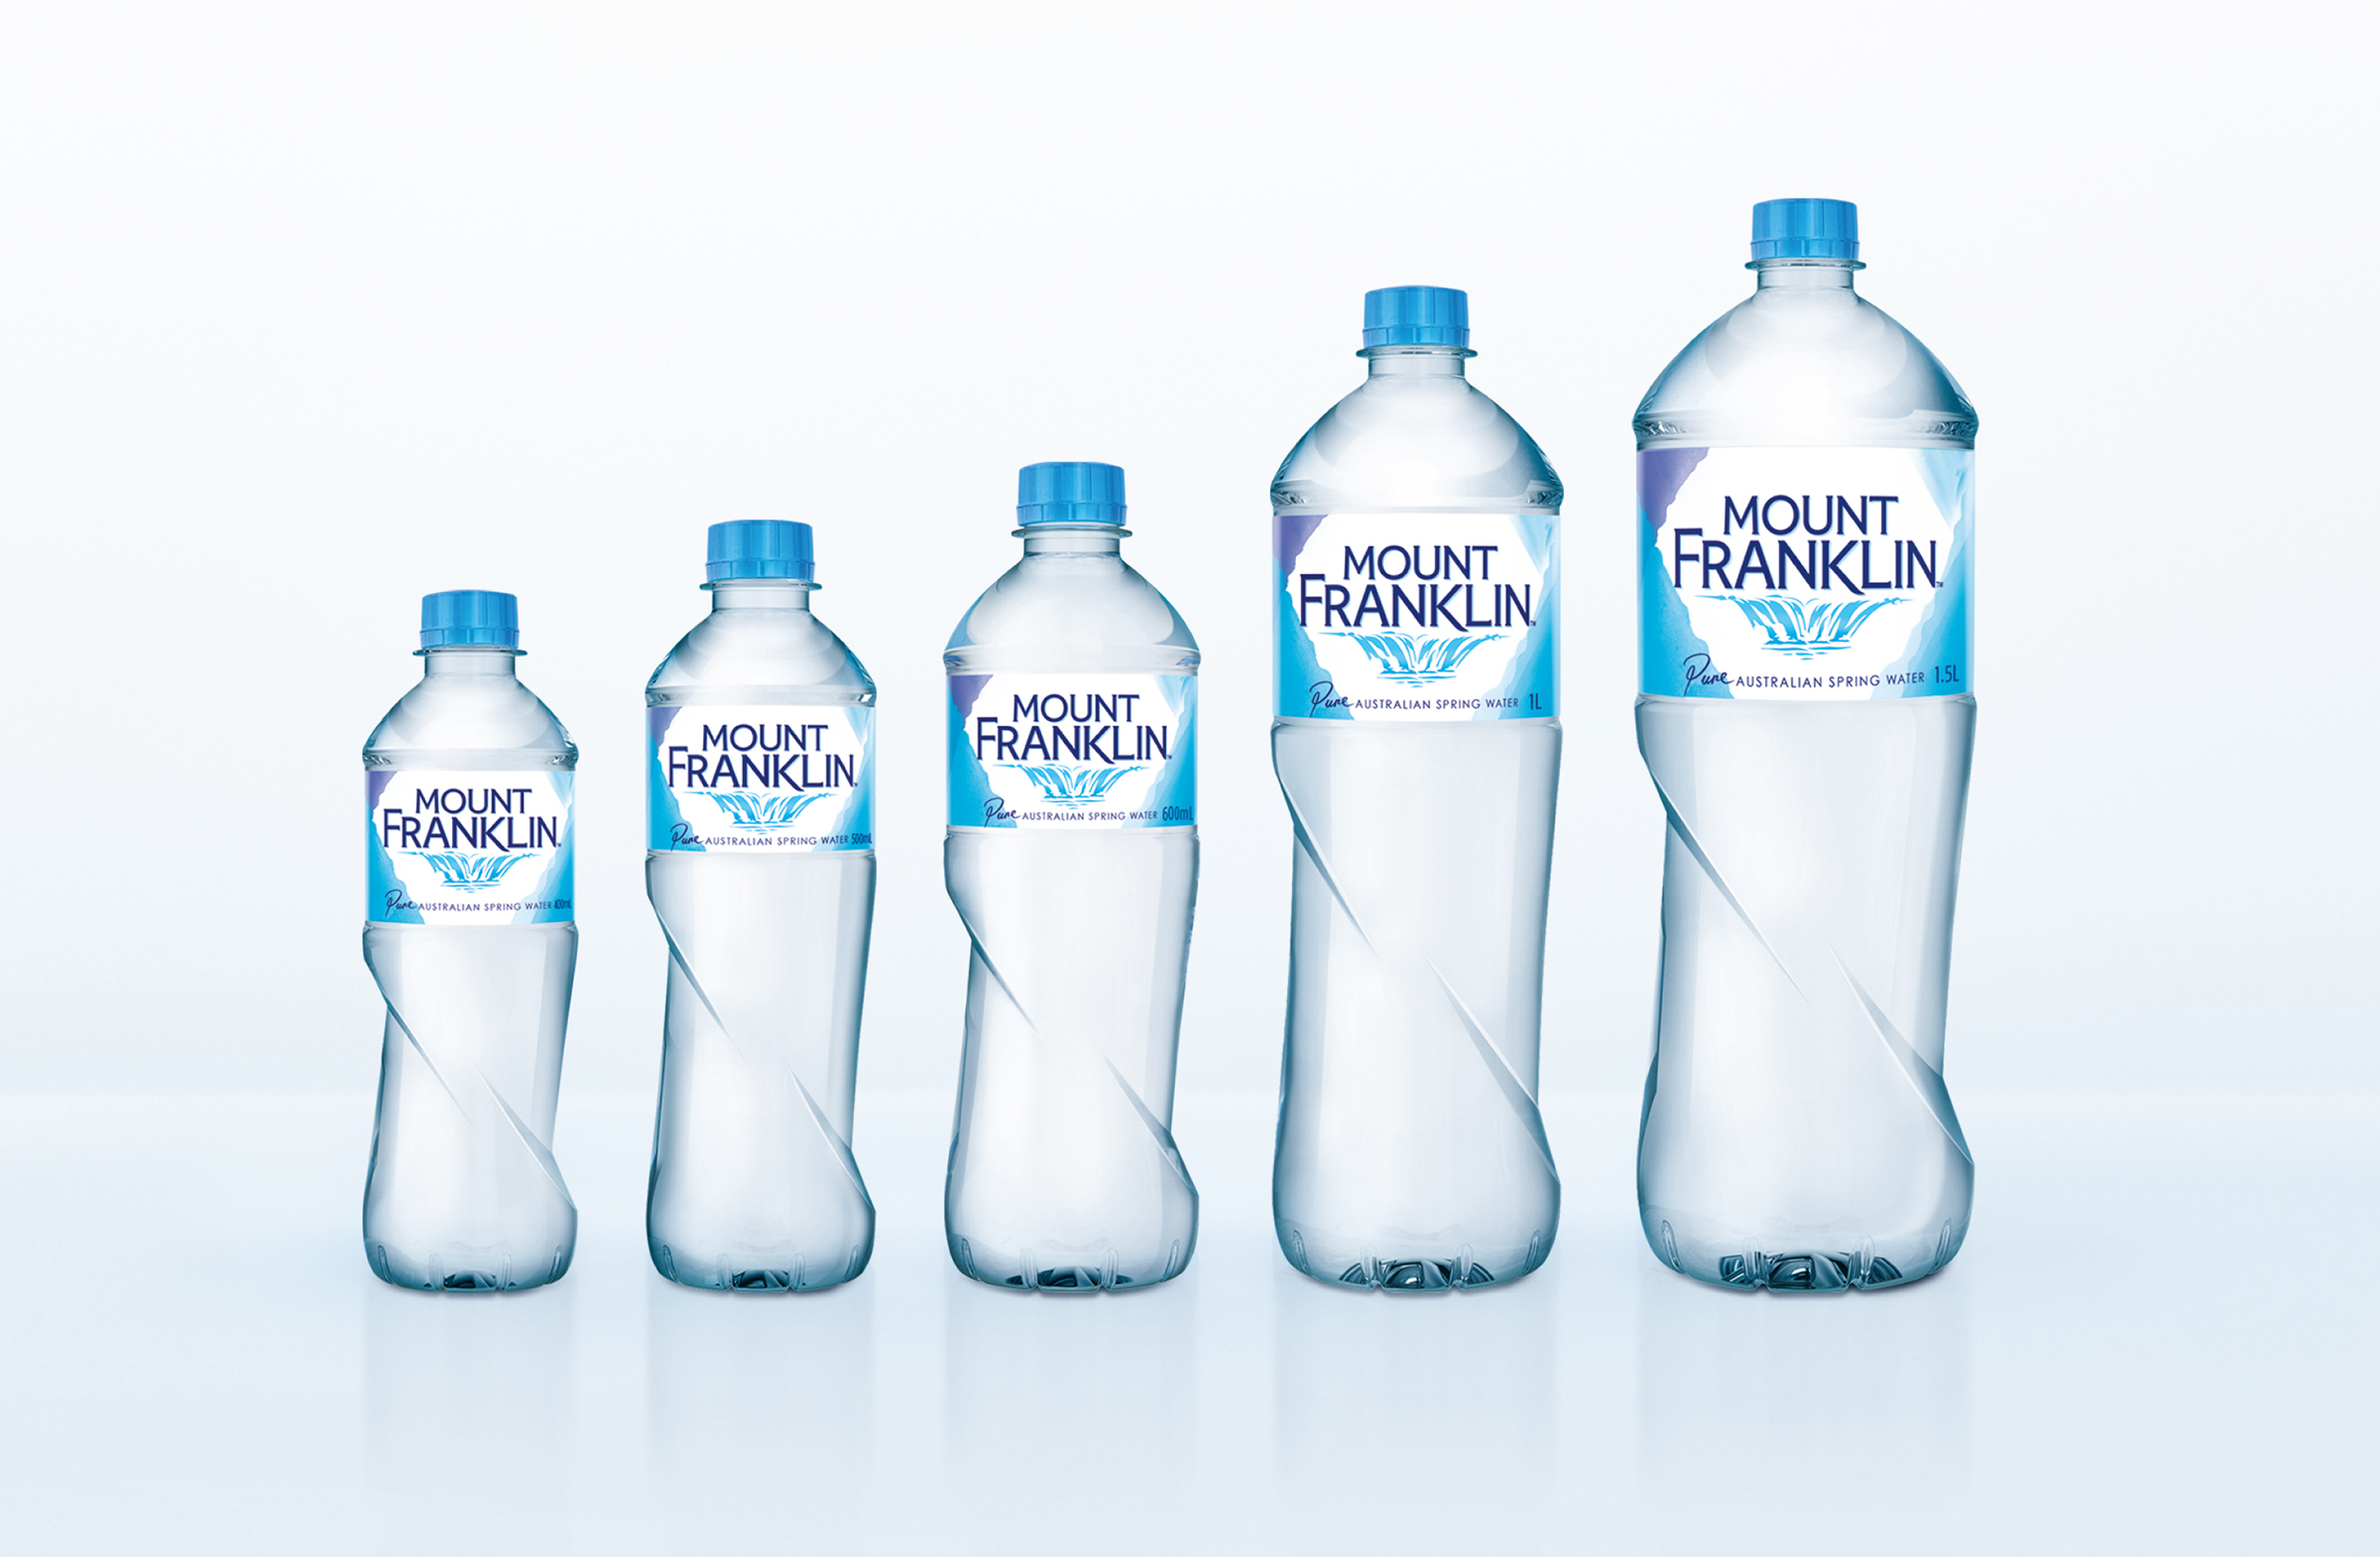 5 bottles of mount franklin water in different sizes